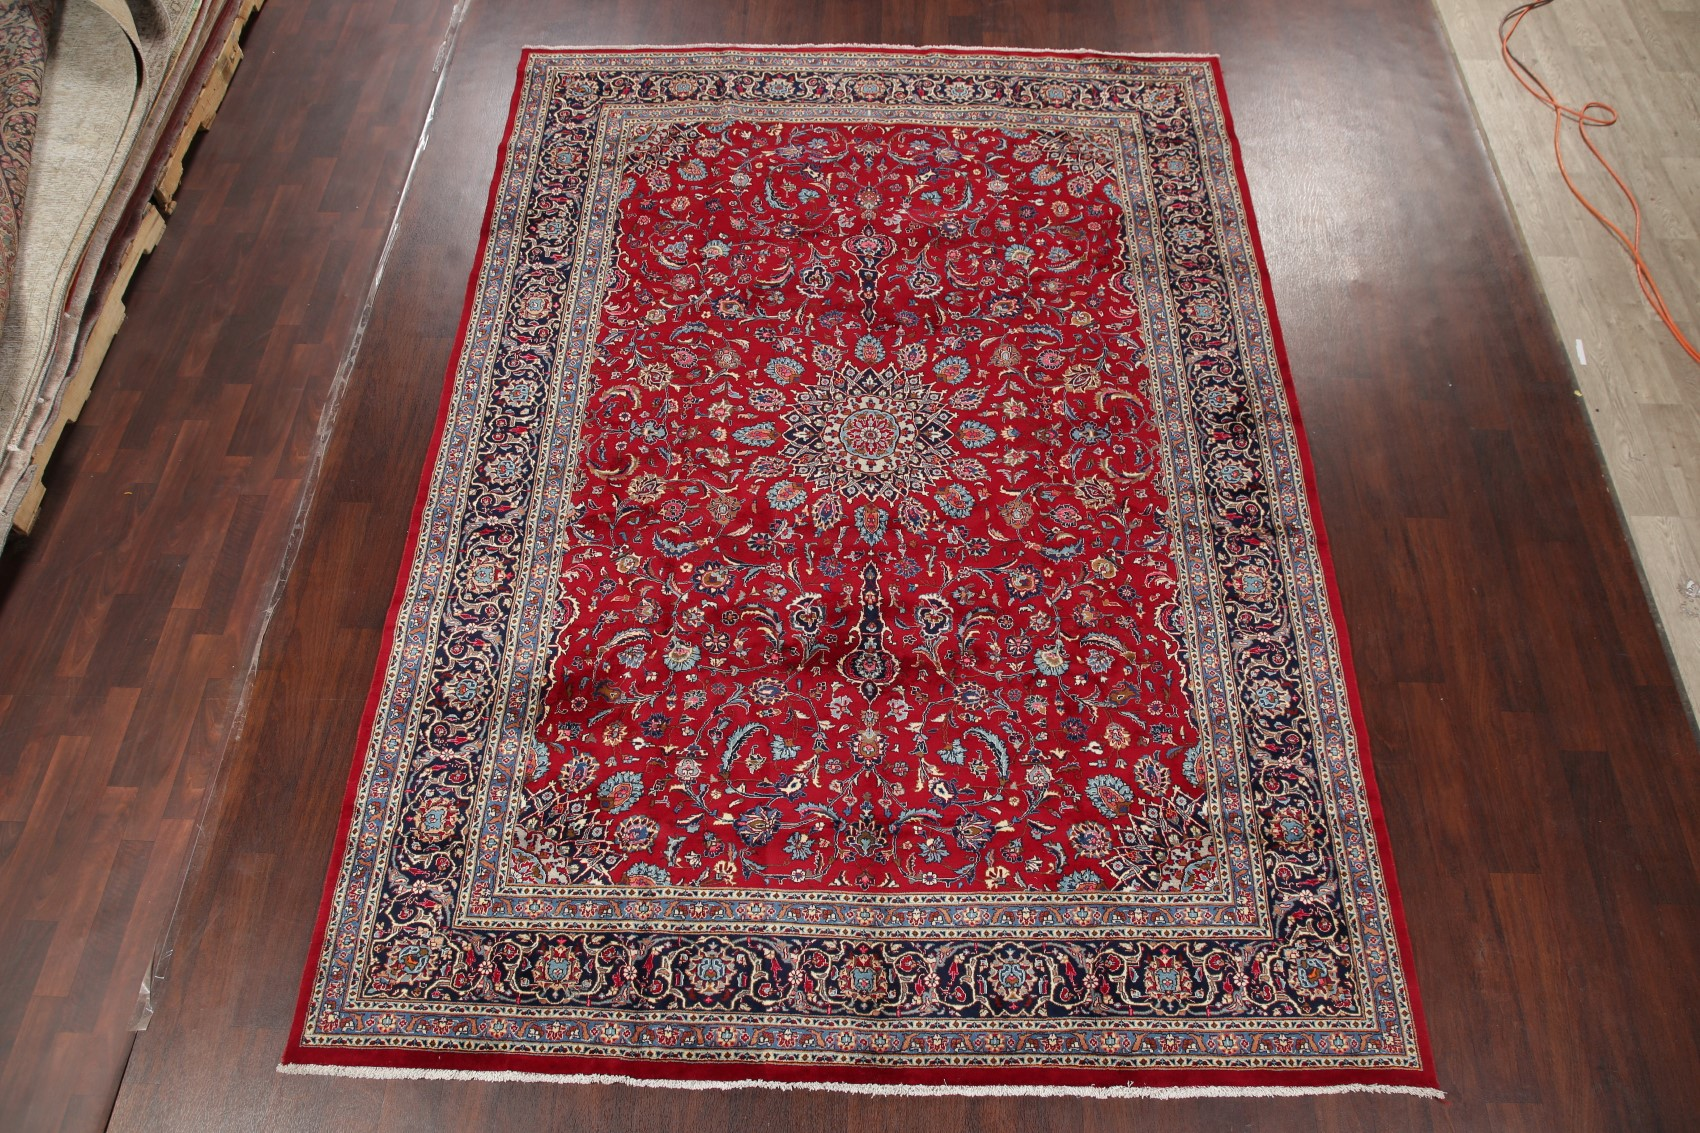 Vintage Floral Red Navy Oriental Ardakan Area Rug Wool Hand Knotted Carpet 8x12 Ebay